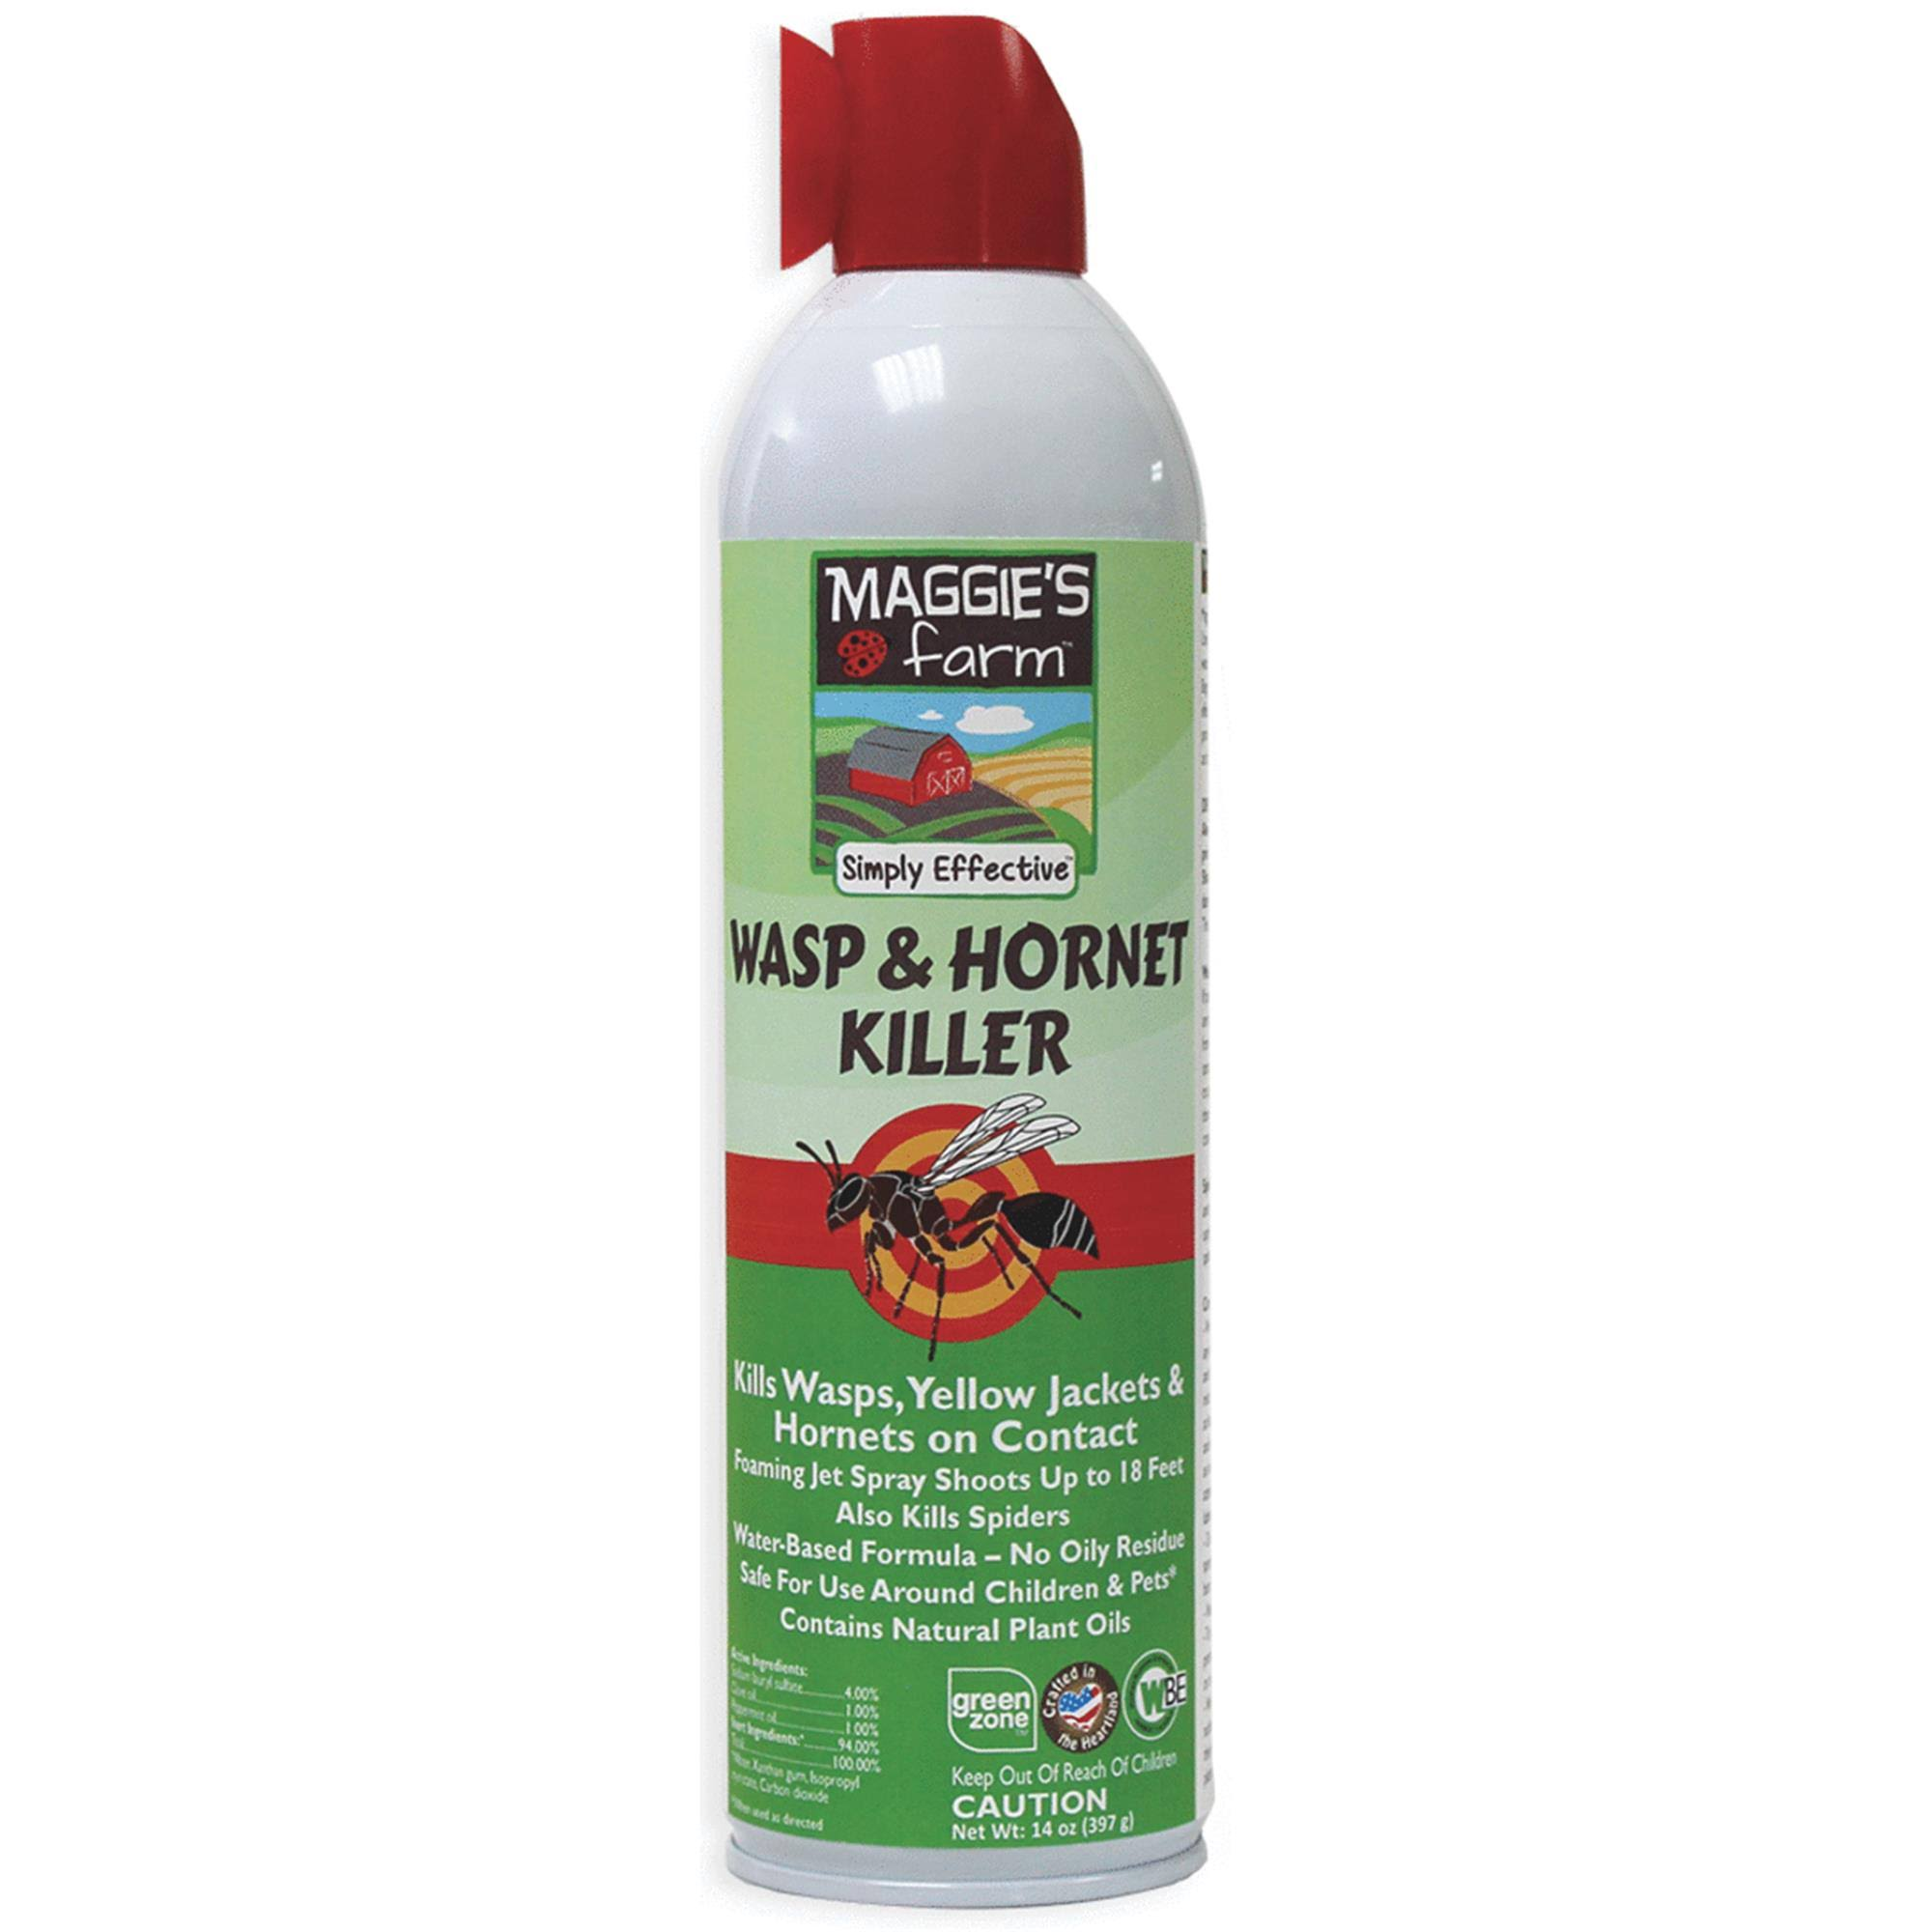 Maggie's Farm Wasp & Hornet Killer - 14oz